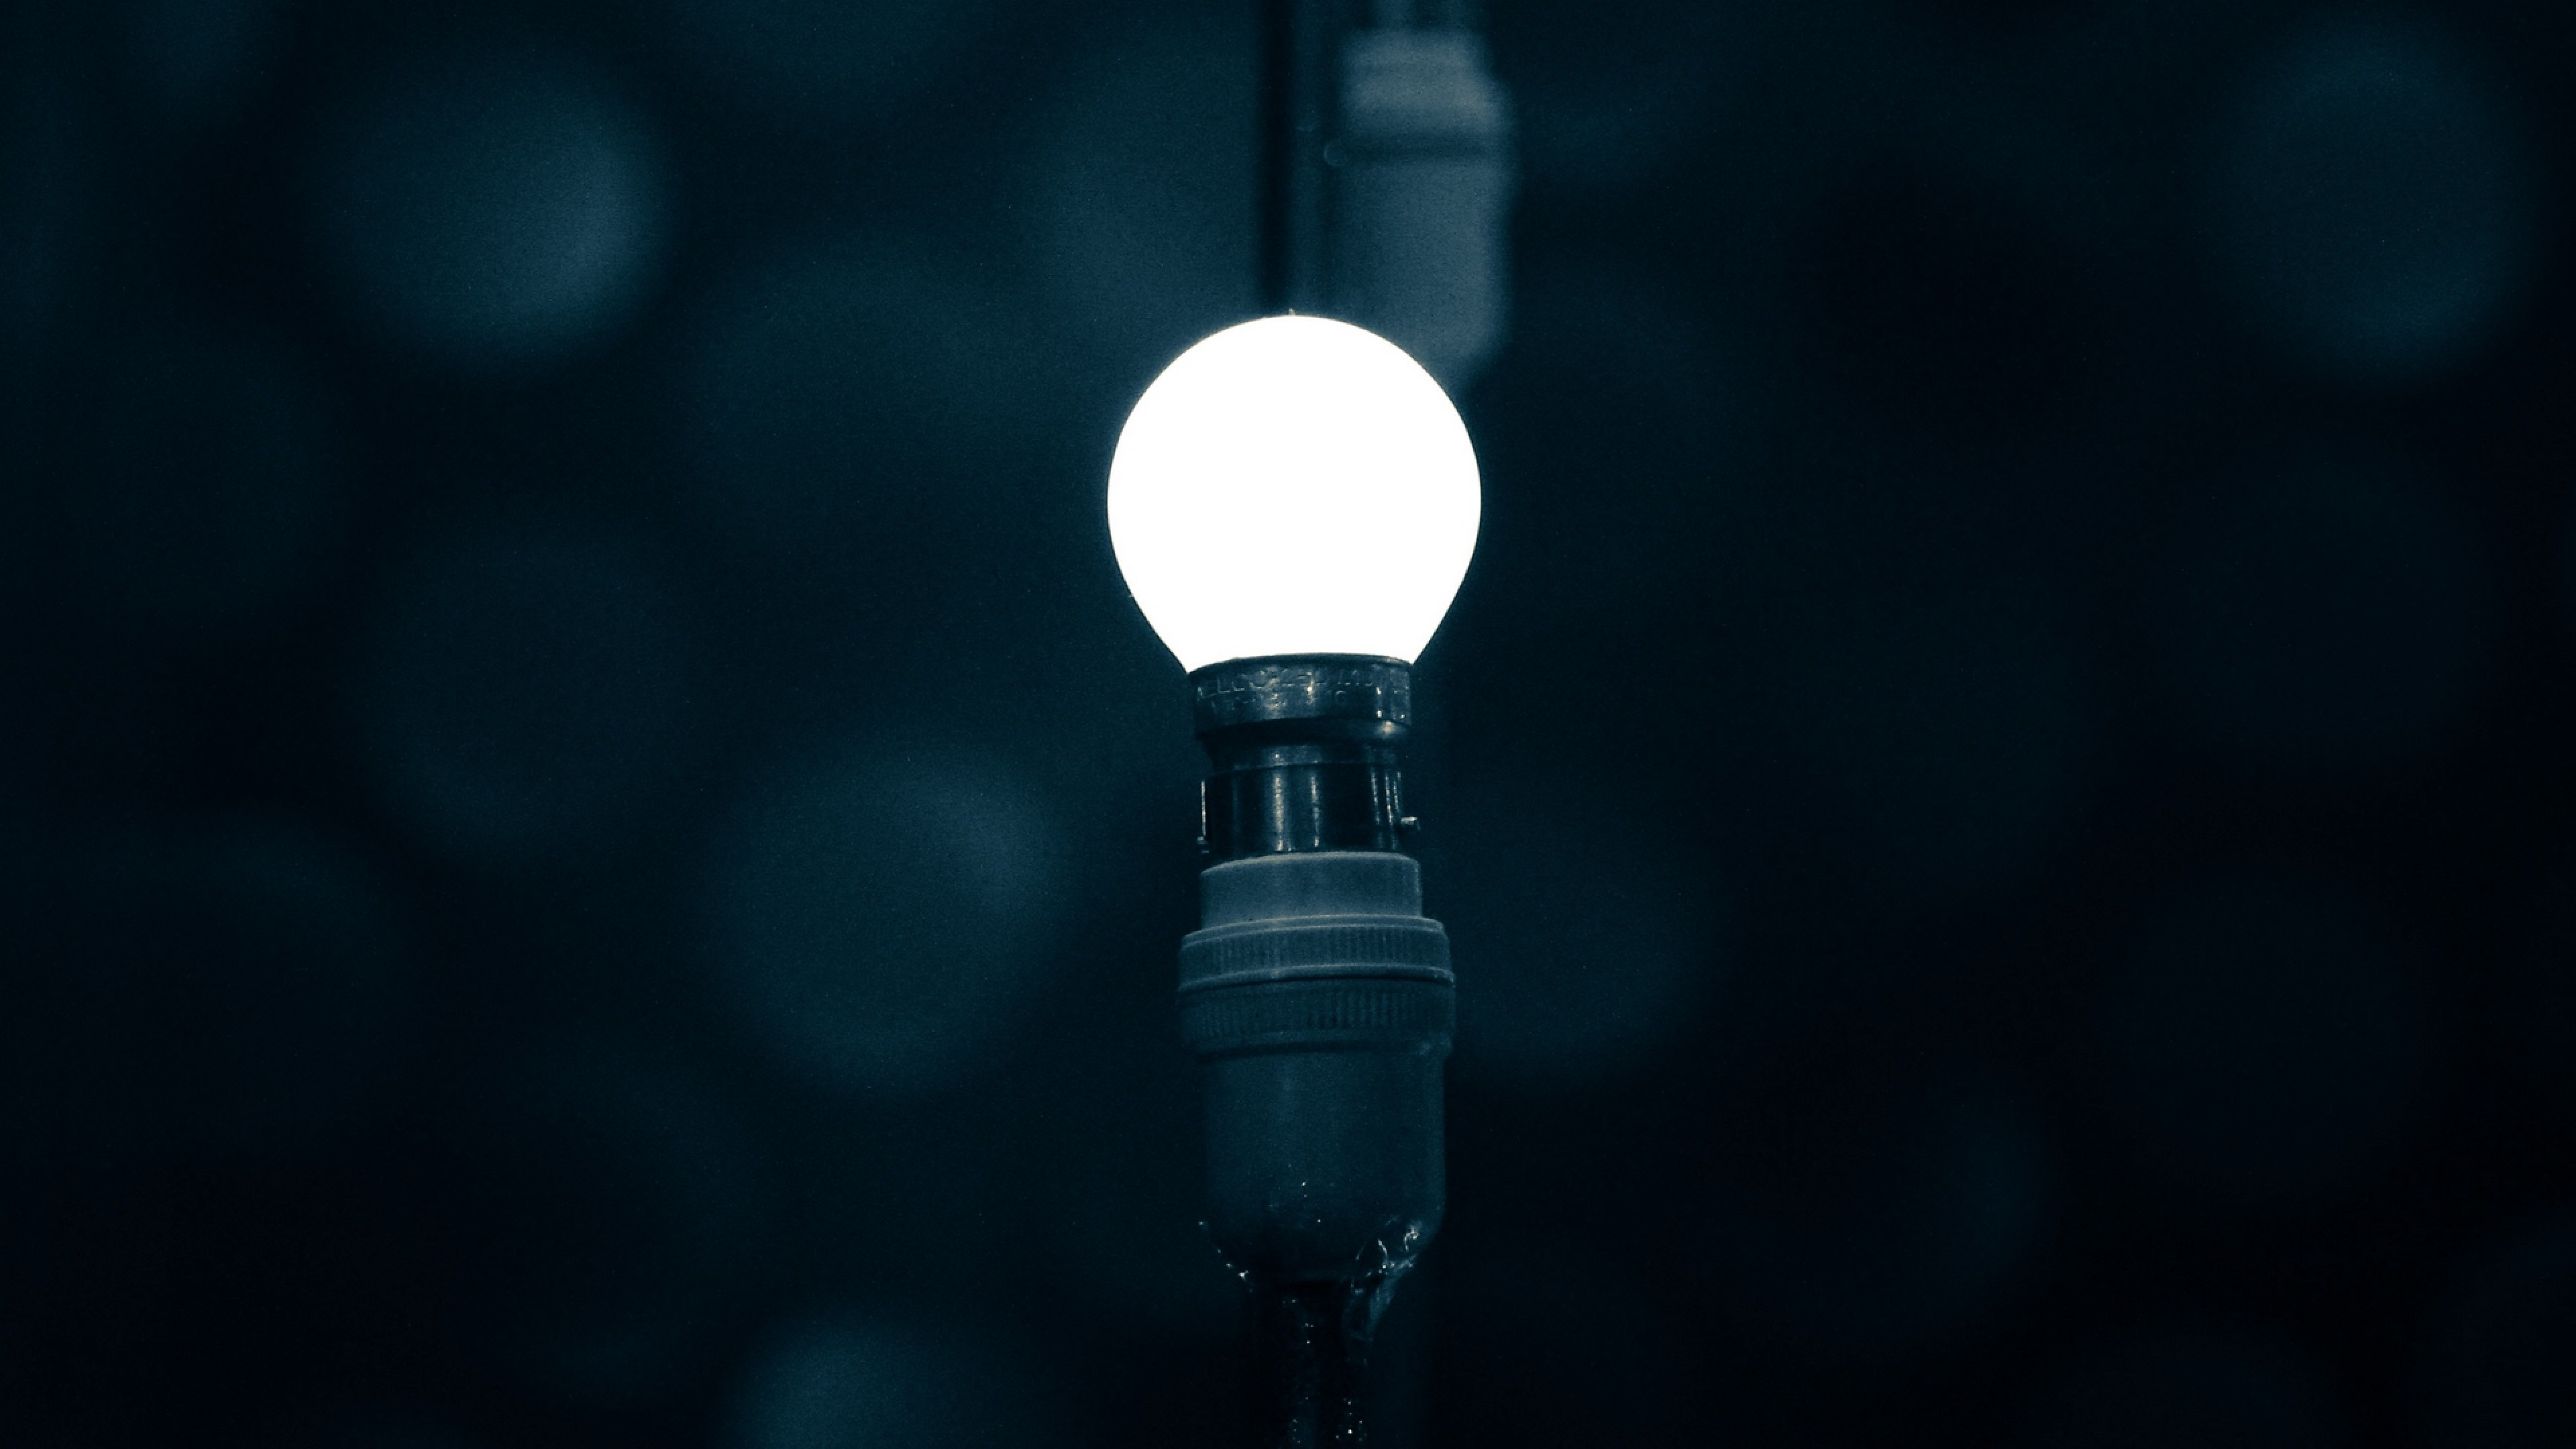 Light bulb at the dark HD Wallpaper